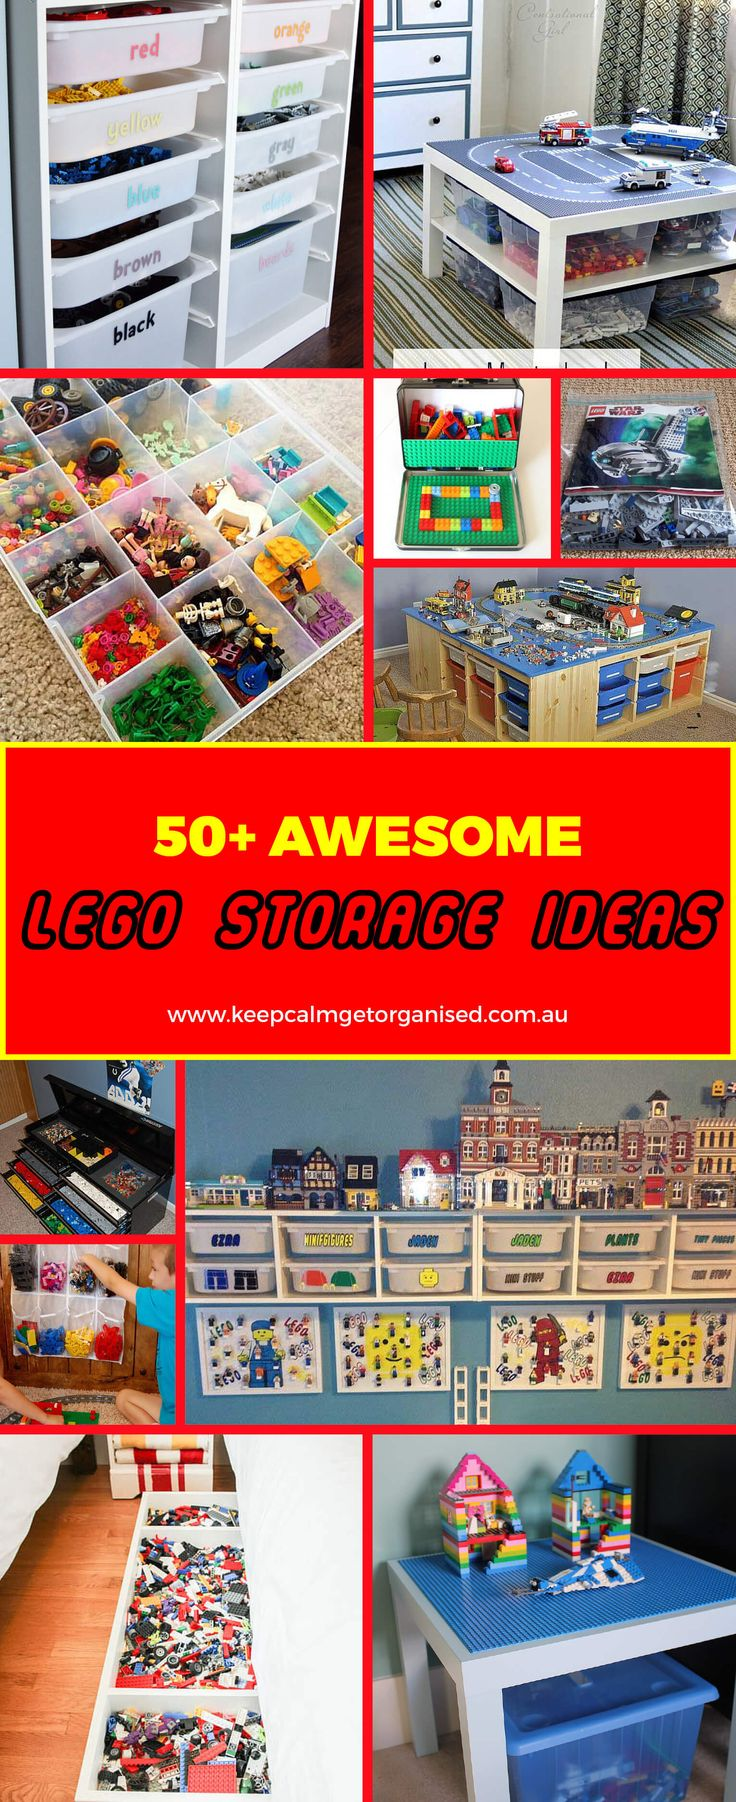 50+ Lego storage ideas & photos. How to organise lego by colour, size, set or purpose. Plus ideas on how to display Lego. The ultimate Lego storage guide.